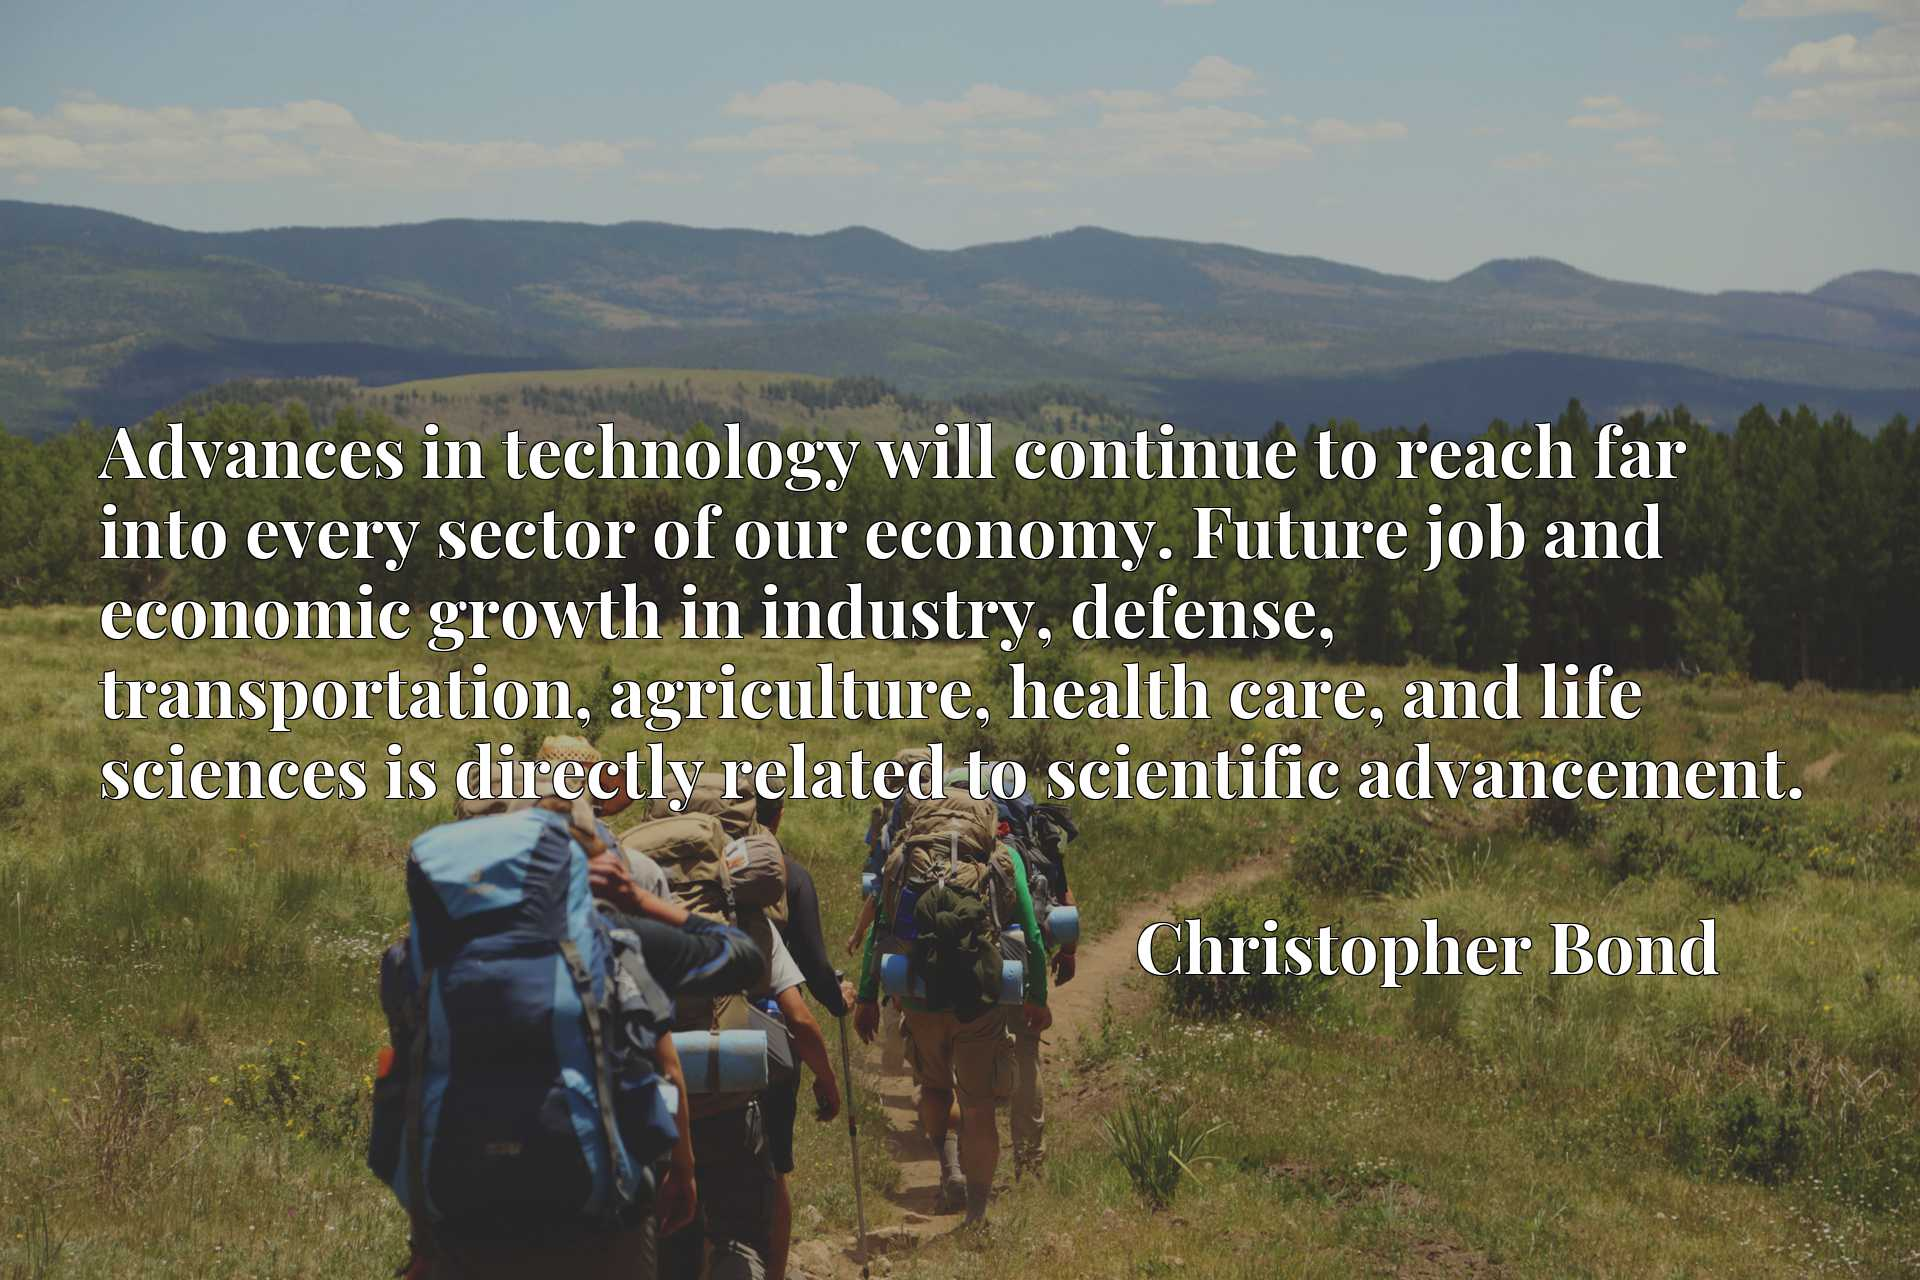 Advances in technology will continue to reach far into every sector of our economy. Future job and economic growth in industry, defense, transportation, agriculture, health care, and life sciences is directly related to scientific advancement.